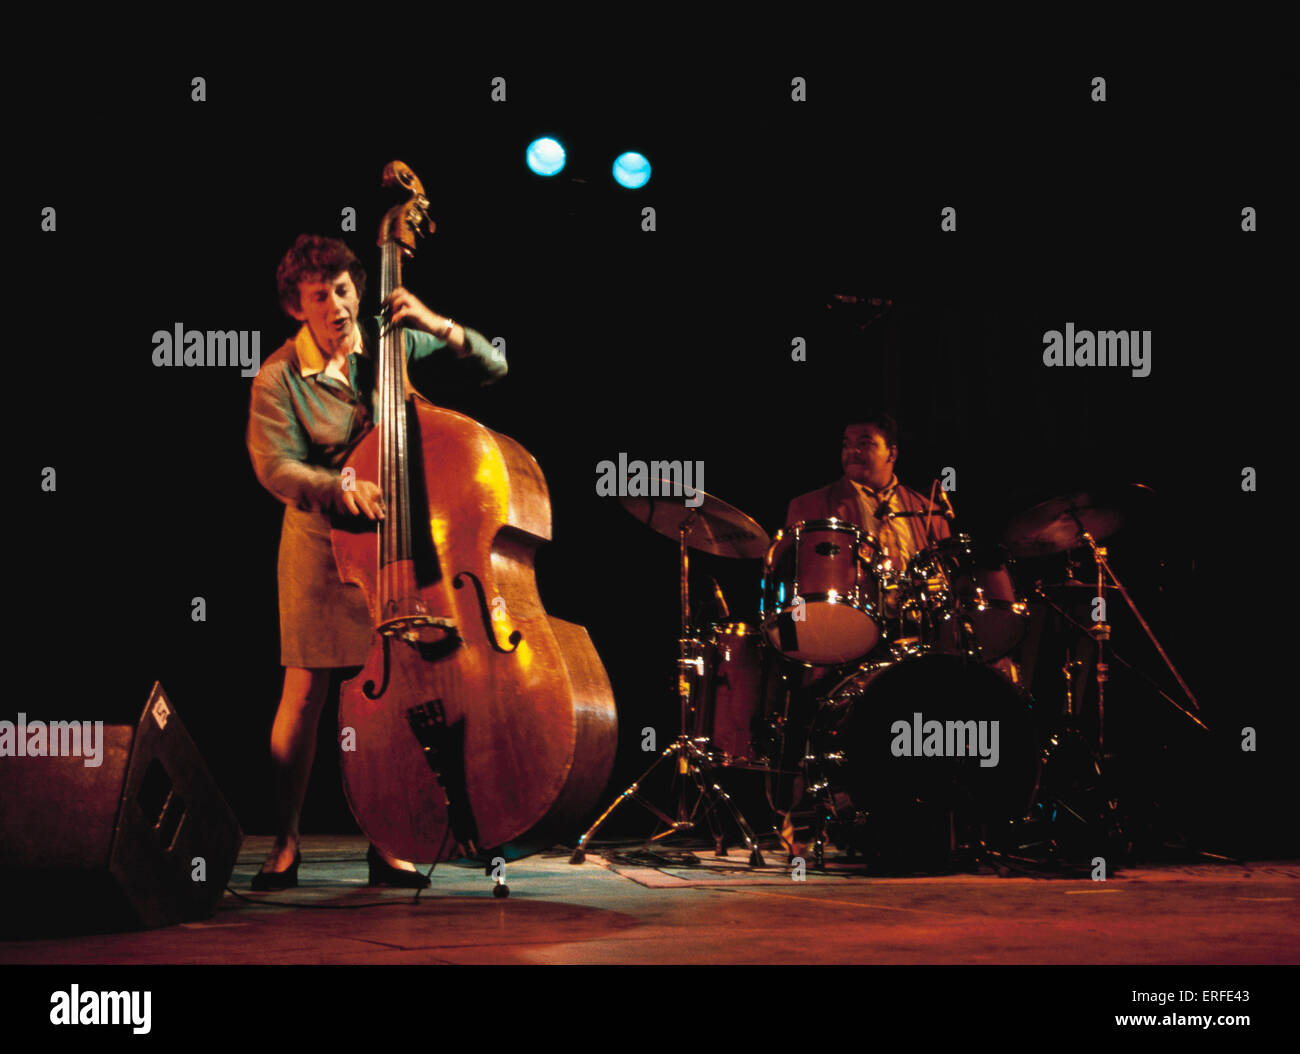 Double bass played pizzicato (plucked) - Jazz setting. Drum kit in background - Stock Image